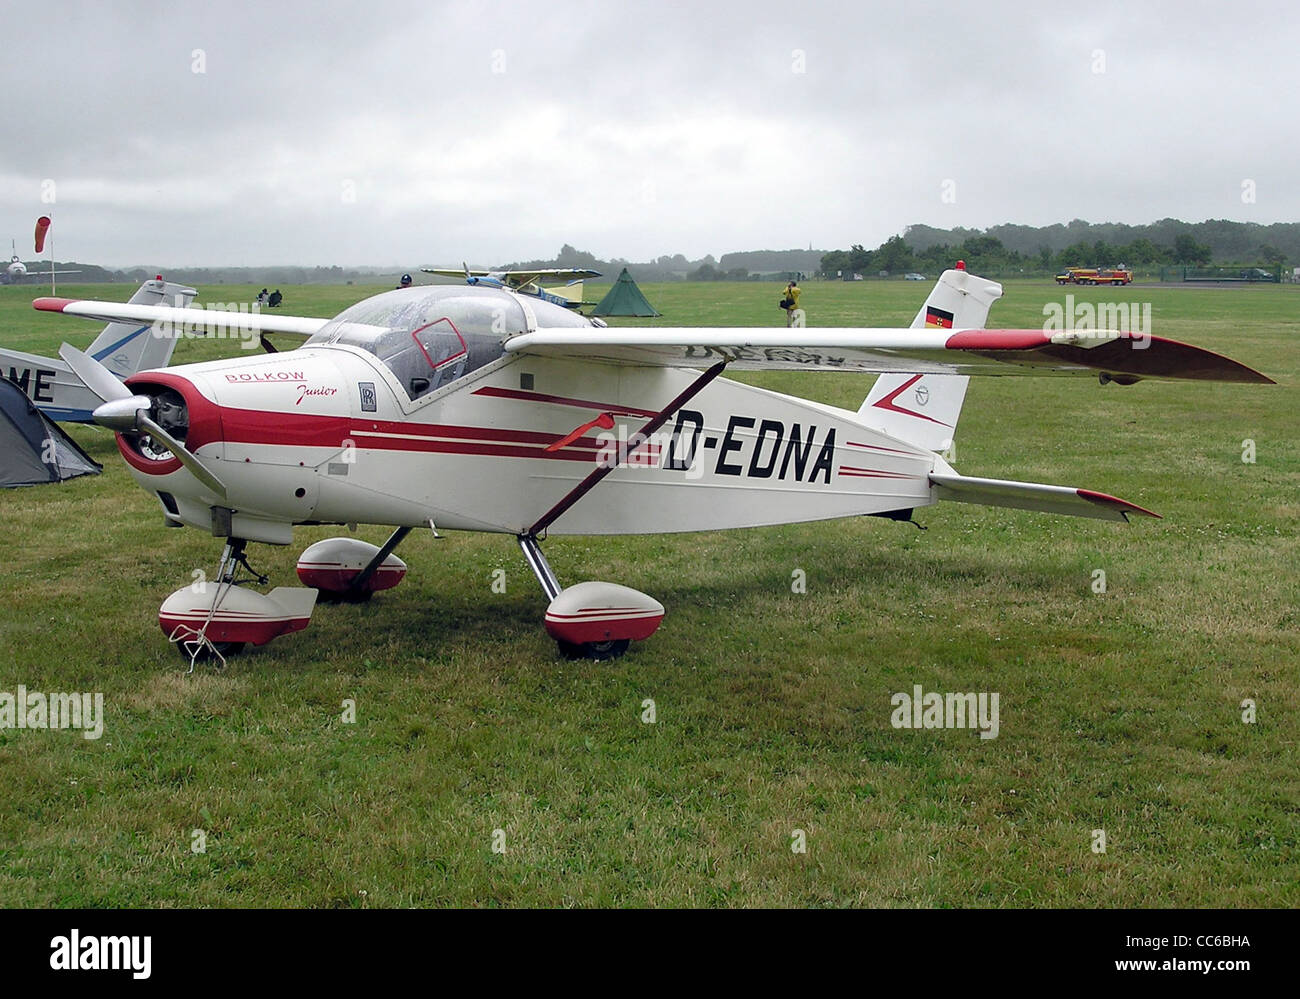 Bolkow BO.208C Junior (German registration D-EDNA) at Kemble Airfield, Gloucestershire, England. - Stock Image